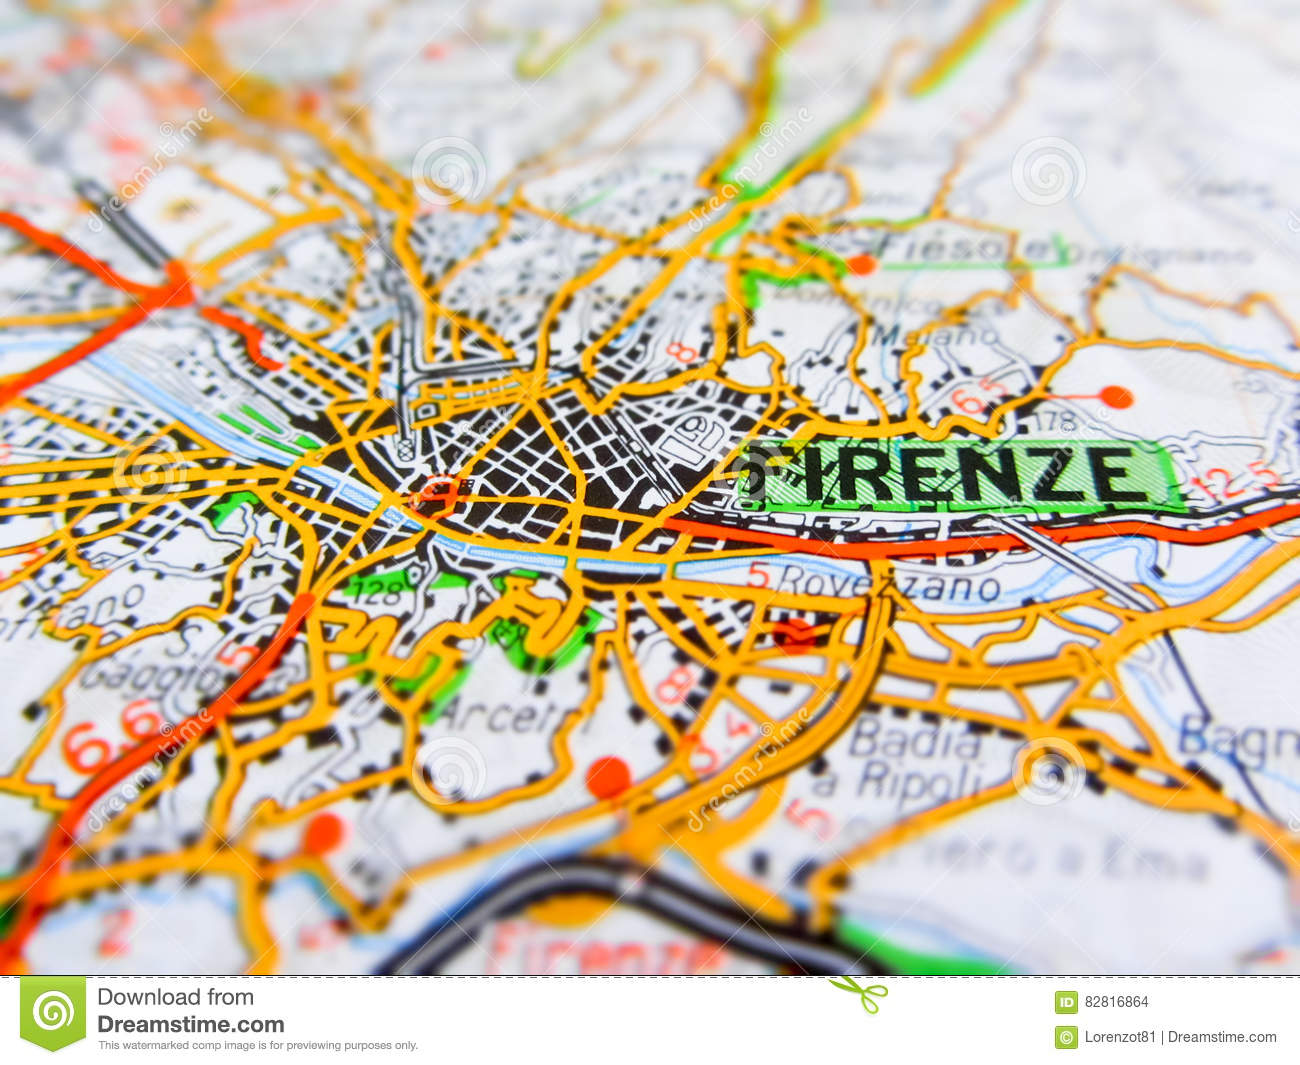 Firenze City Over A Road Map Italy Stock Photo Image Of Firenze